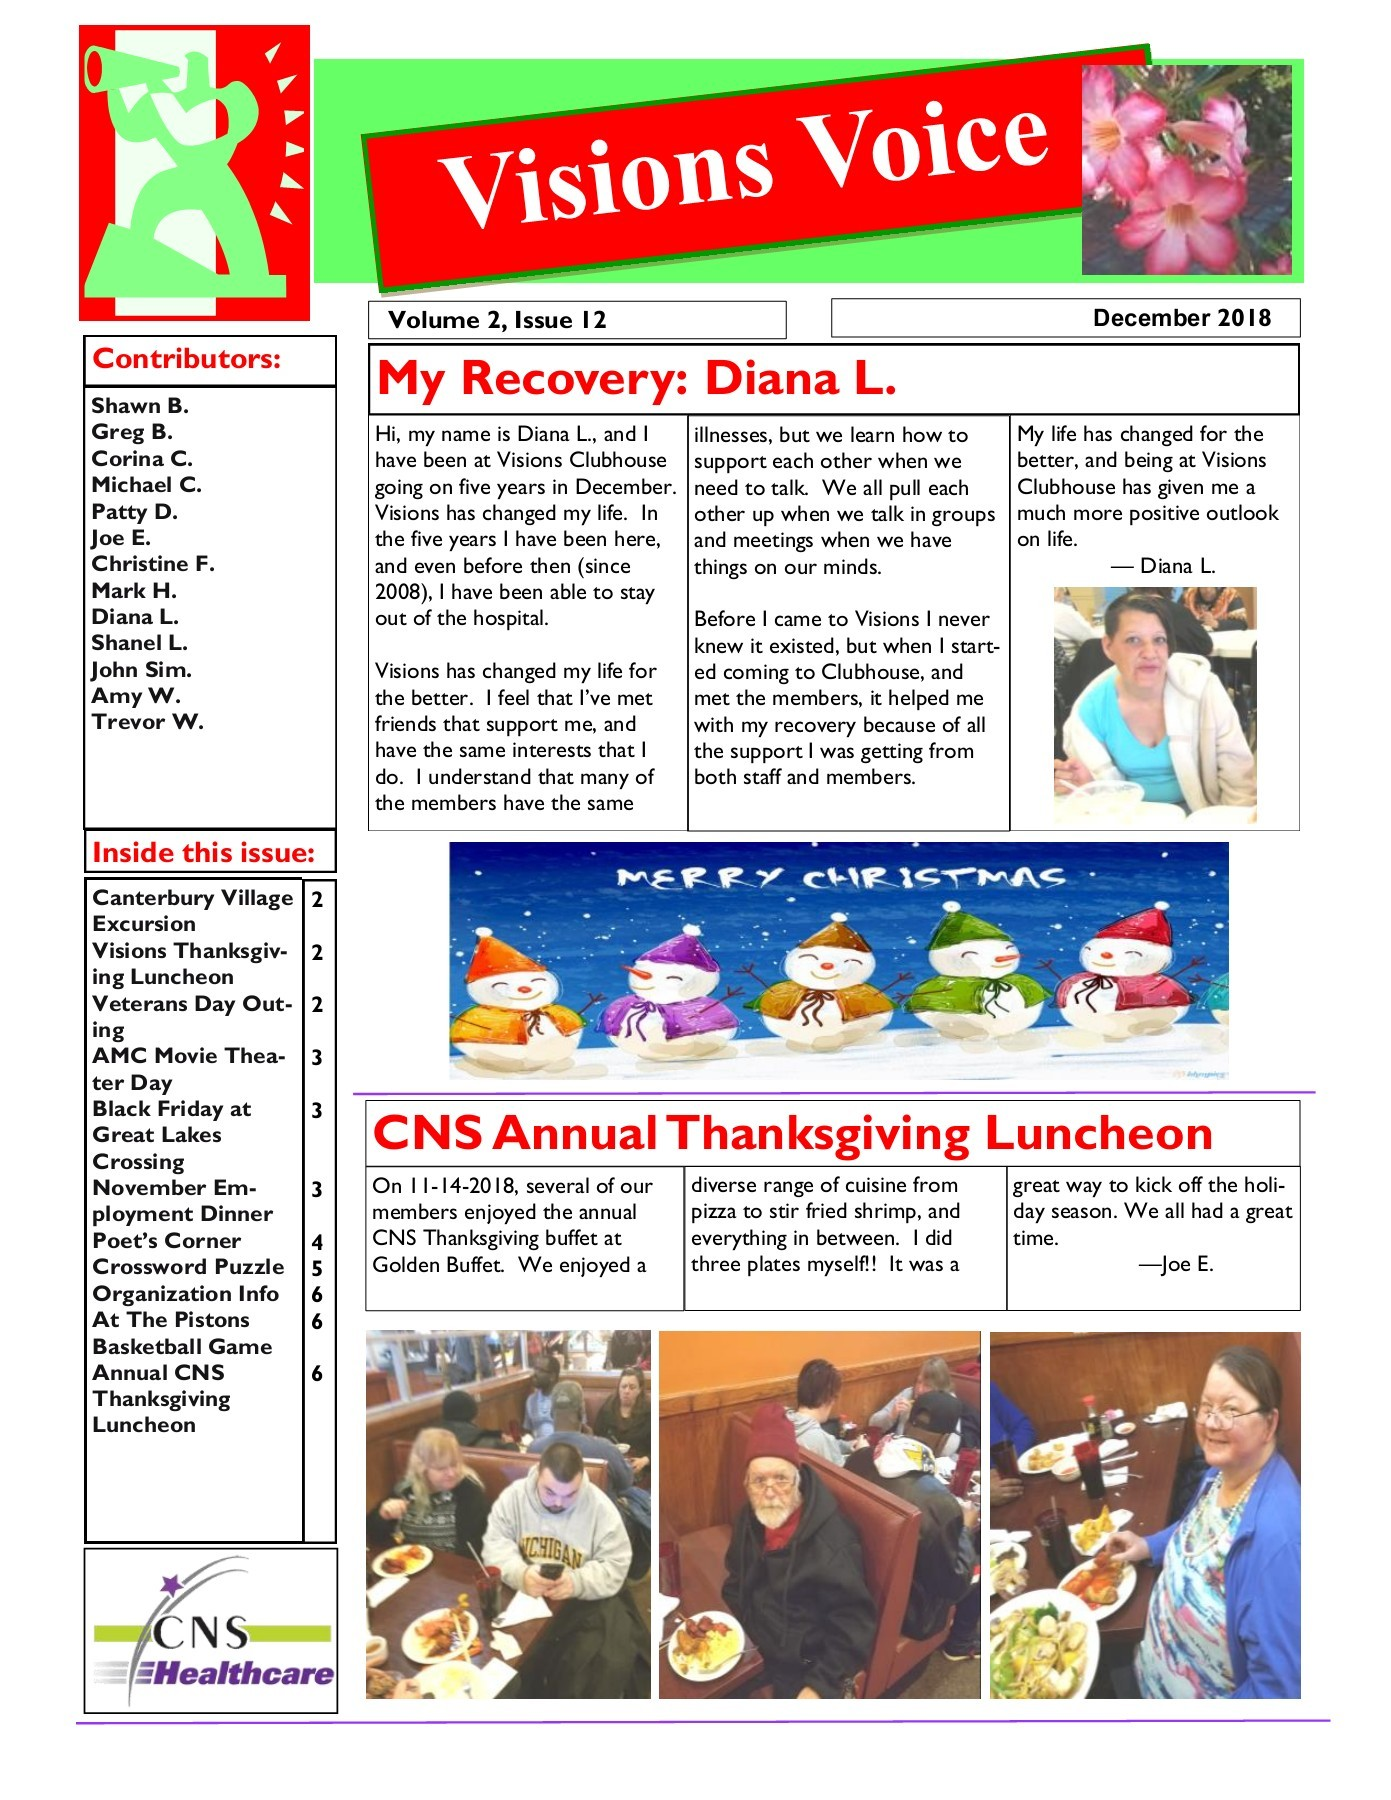 Visions Voice December 2018 – CNS Healthcare